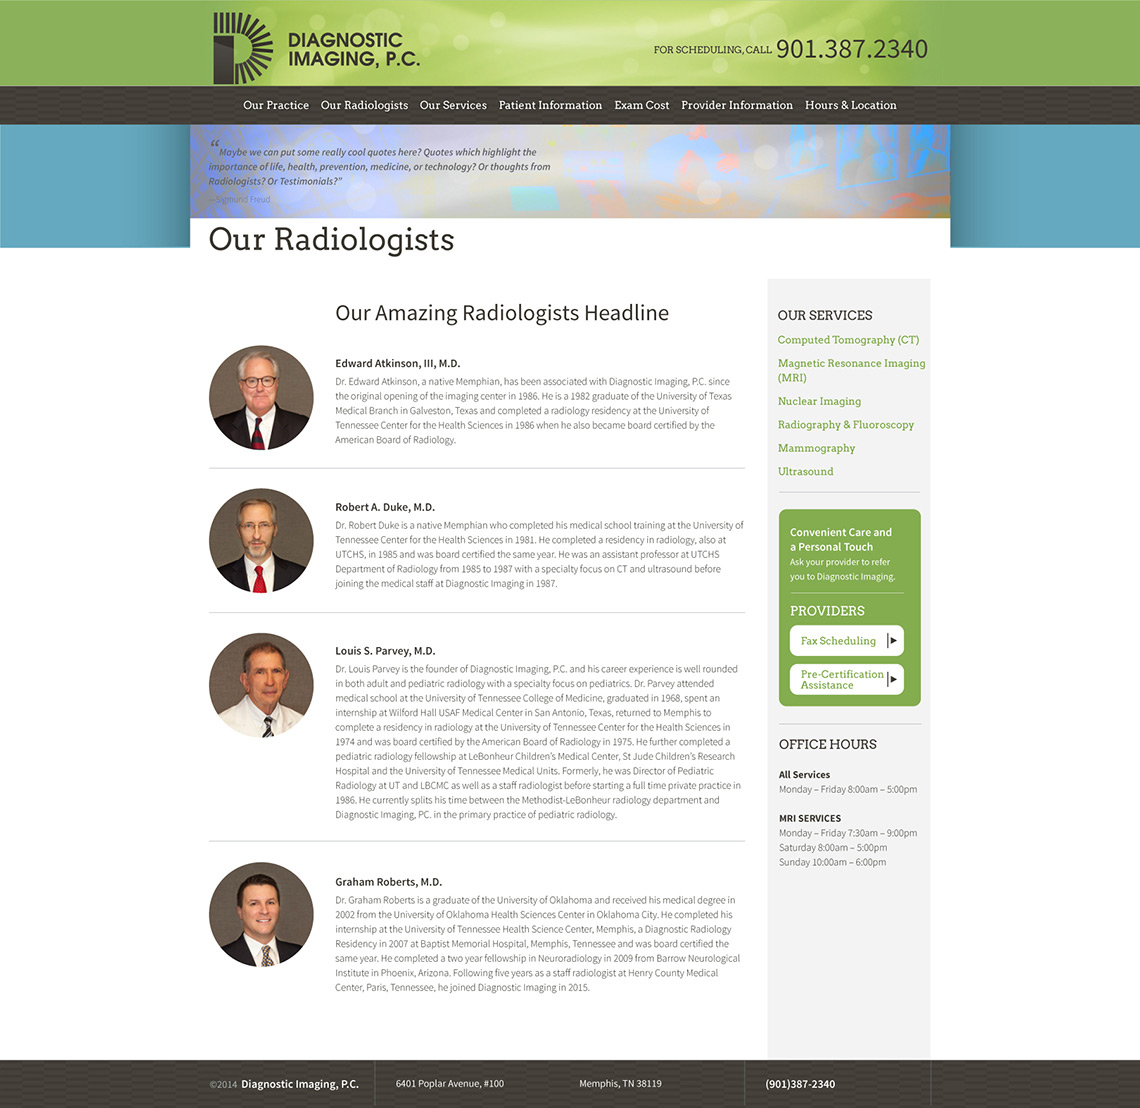 Diagnostic Imaging Web Design Our Radiologists